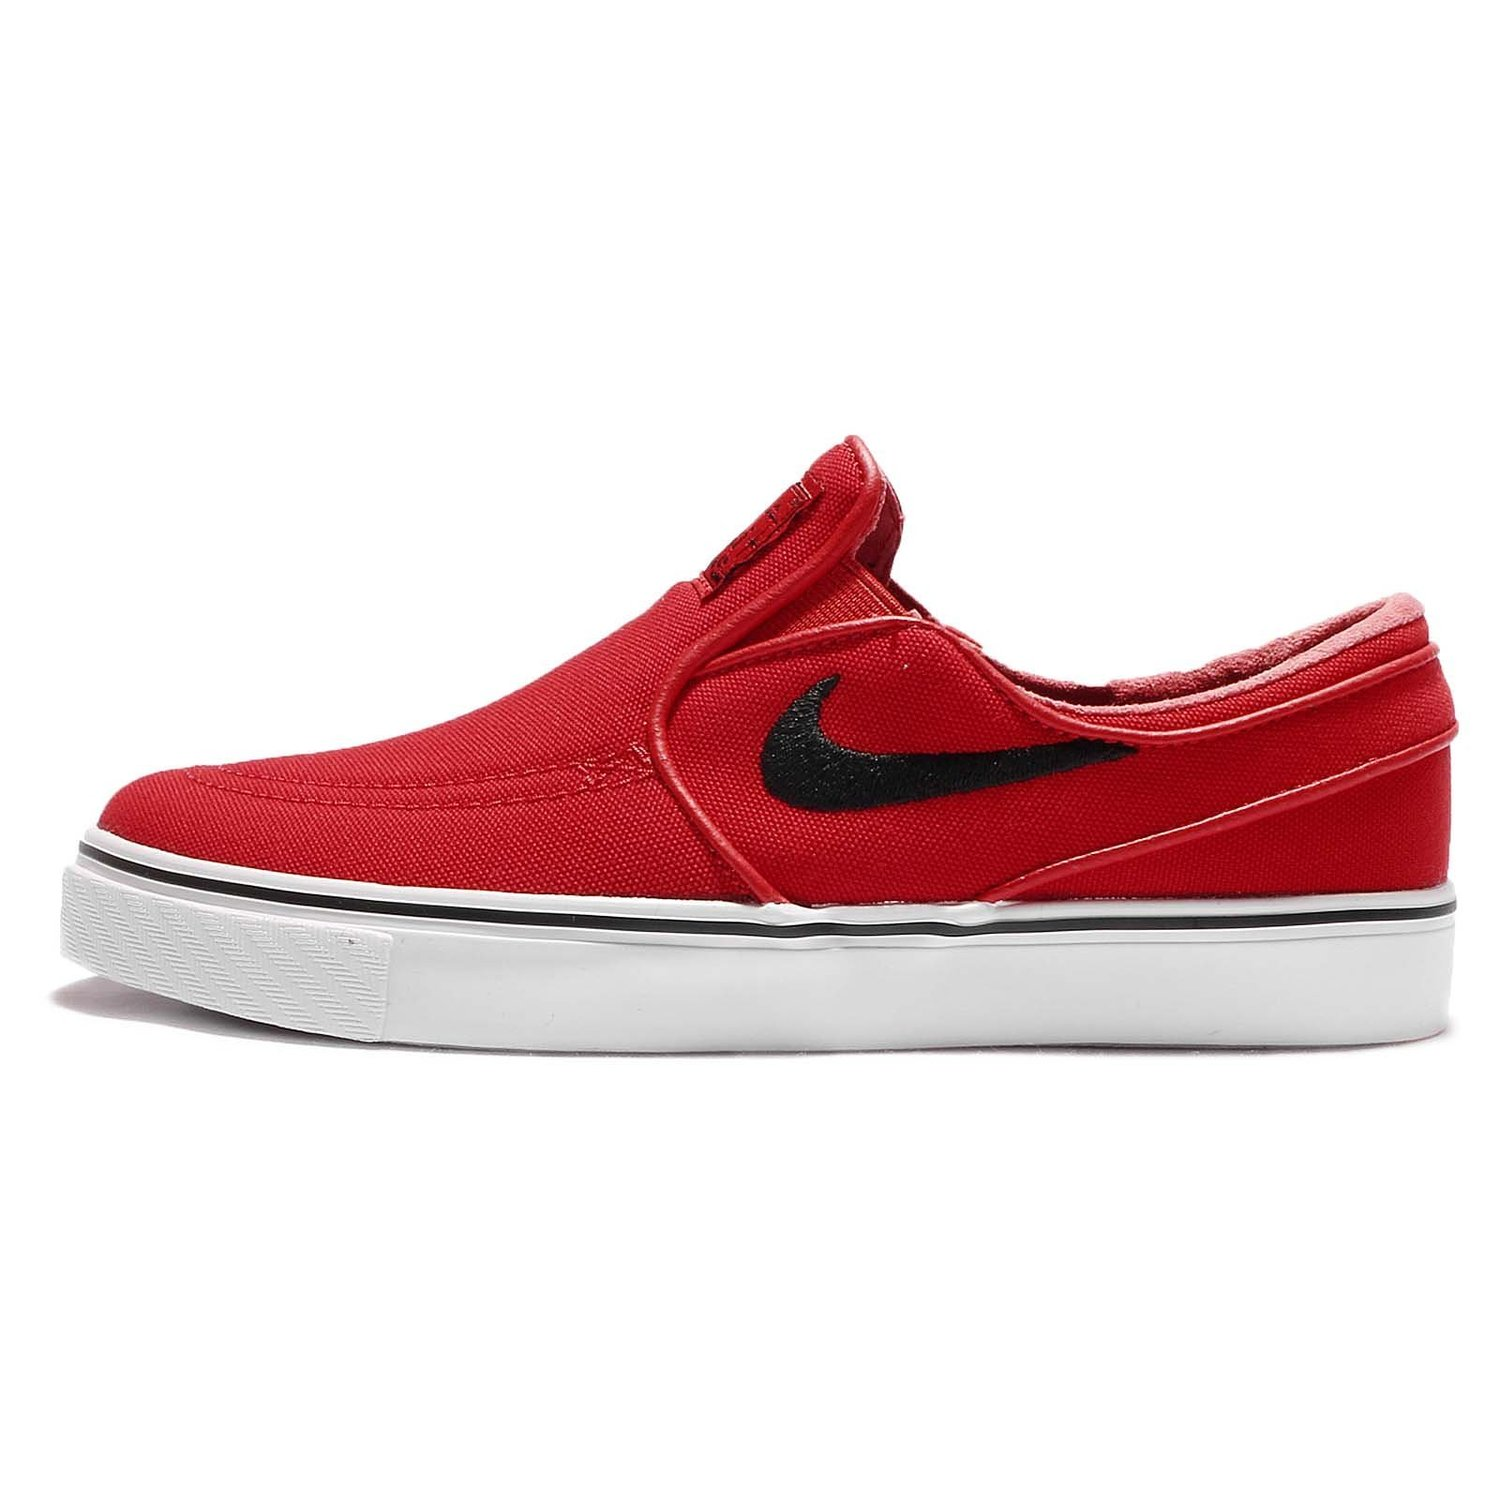 da8727d89e3d Get Quotations · Nike Men s Zoom Stefan Janoski Slip Cnvs